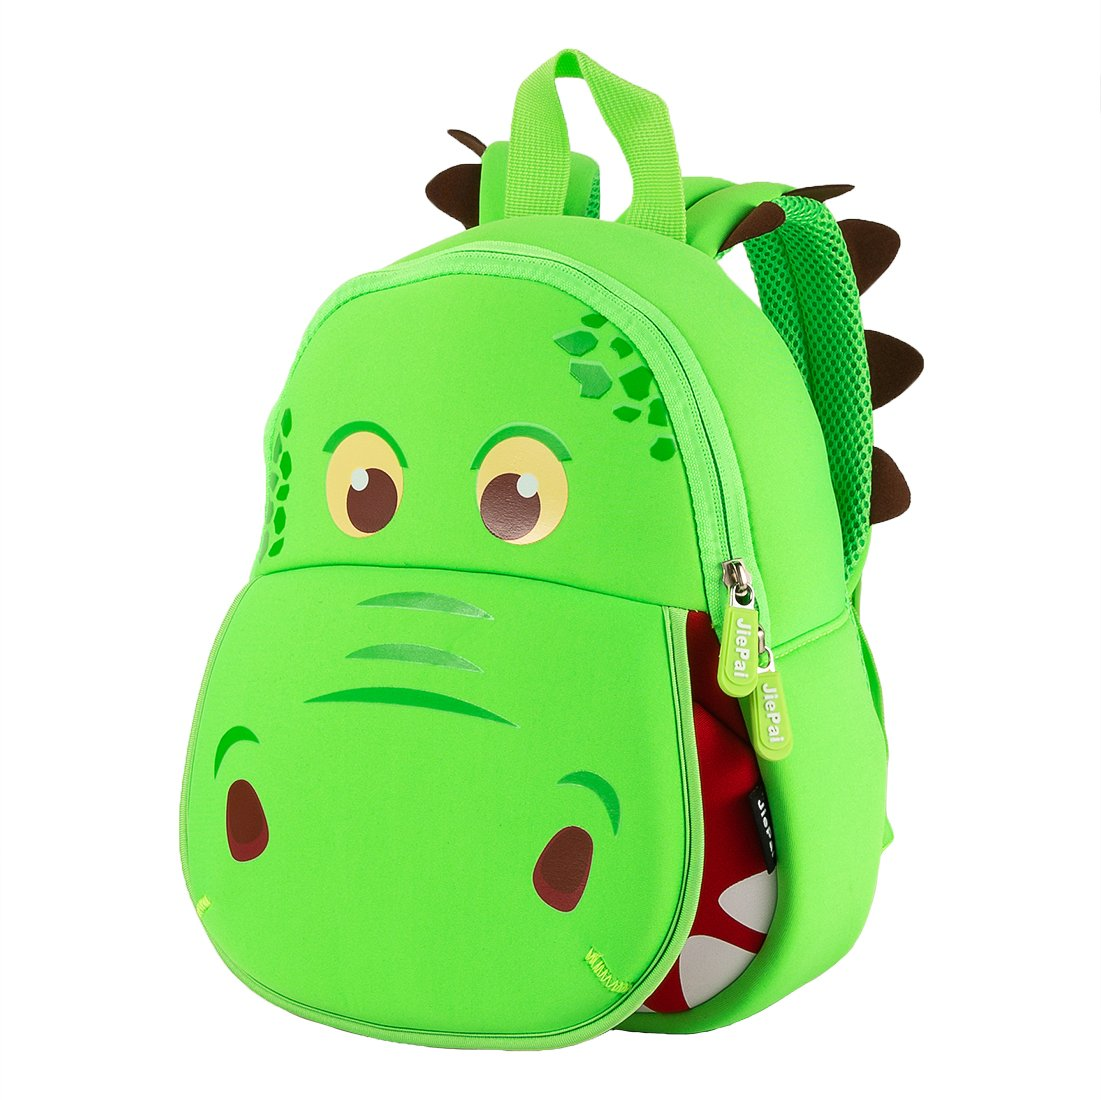 f18a7b04ad1c JiePai Toddler Backpack,Kids Dinosaur Backpack Waterproof 3D Cartoon  Boys/Girls Backpack,Perfect for Preschool, Daycare, and Day Trips,Age ...